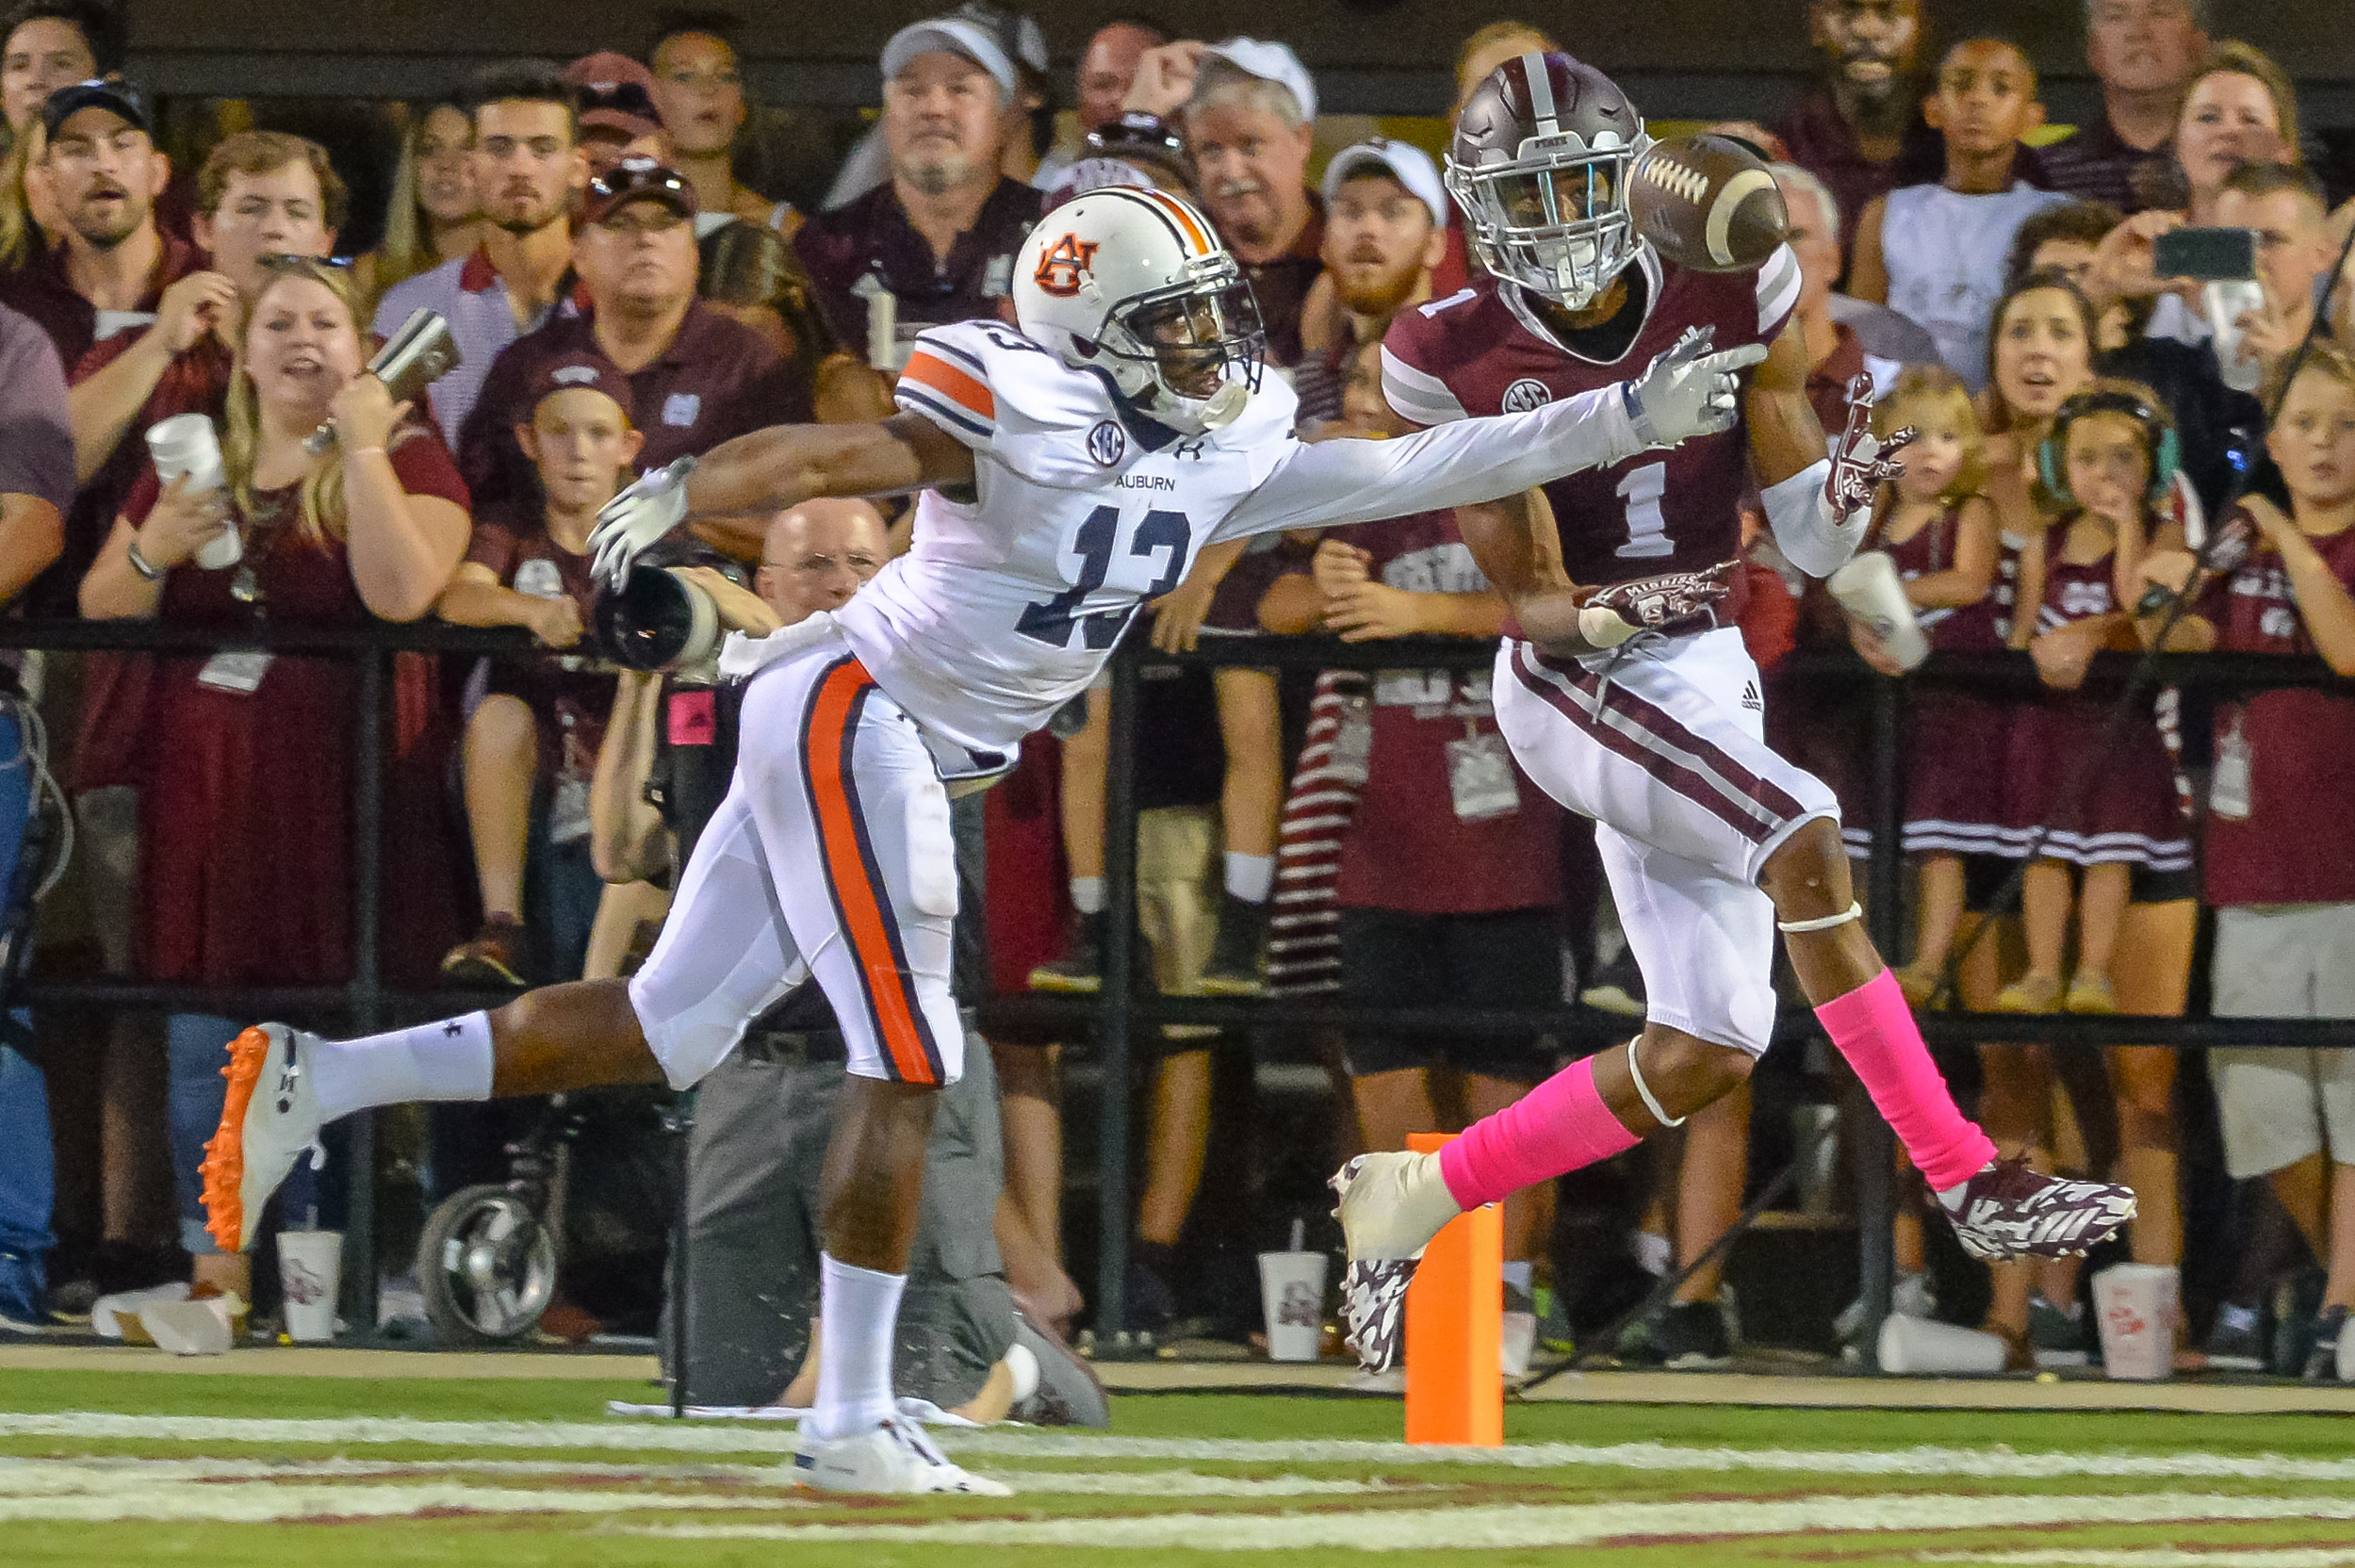 Auburn Tigers defensive back Javaris Davis (13) breaks up a pass intended for Mississippi State Bulldogs wide receiver Stephen Guidry (1) during the second half of Saturday's game, at Davis Wade Stadium in Starkville, MS. Daily Mountain Eagle -  Jeff Johnsey